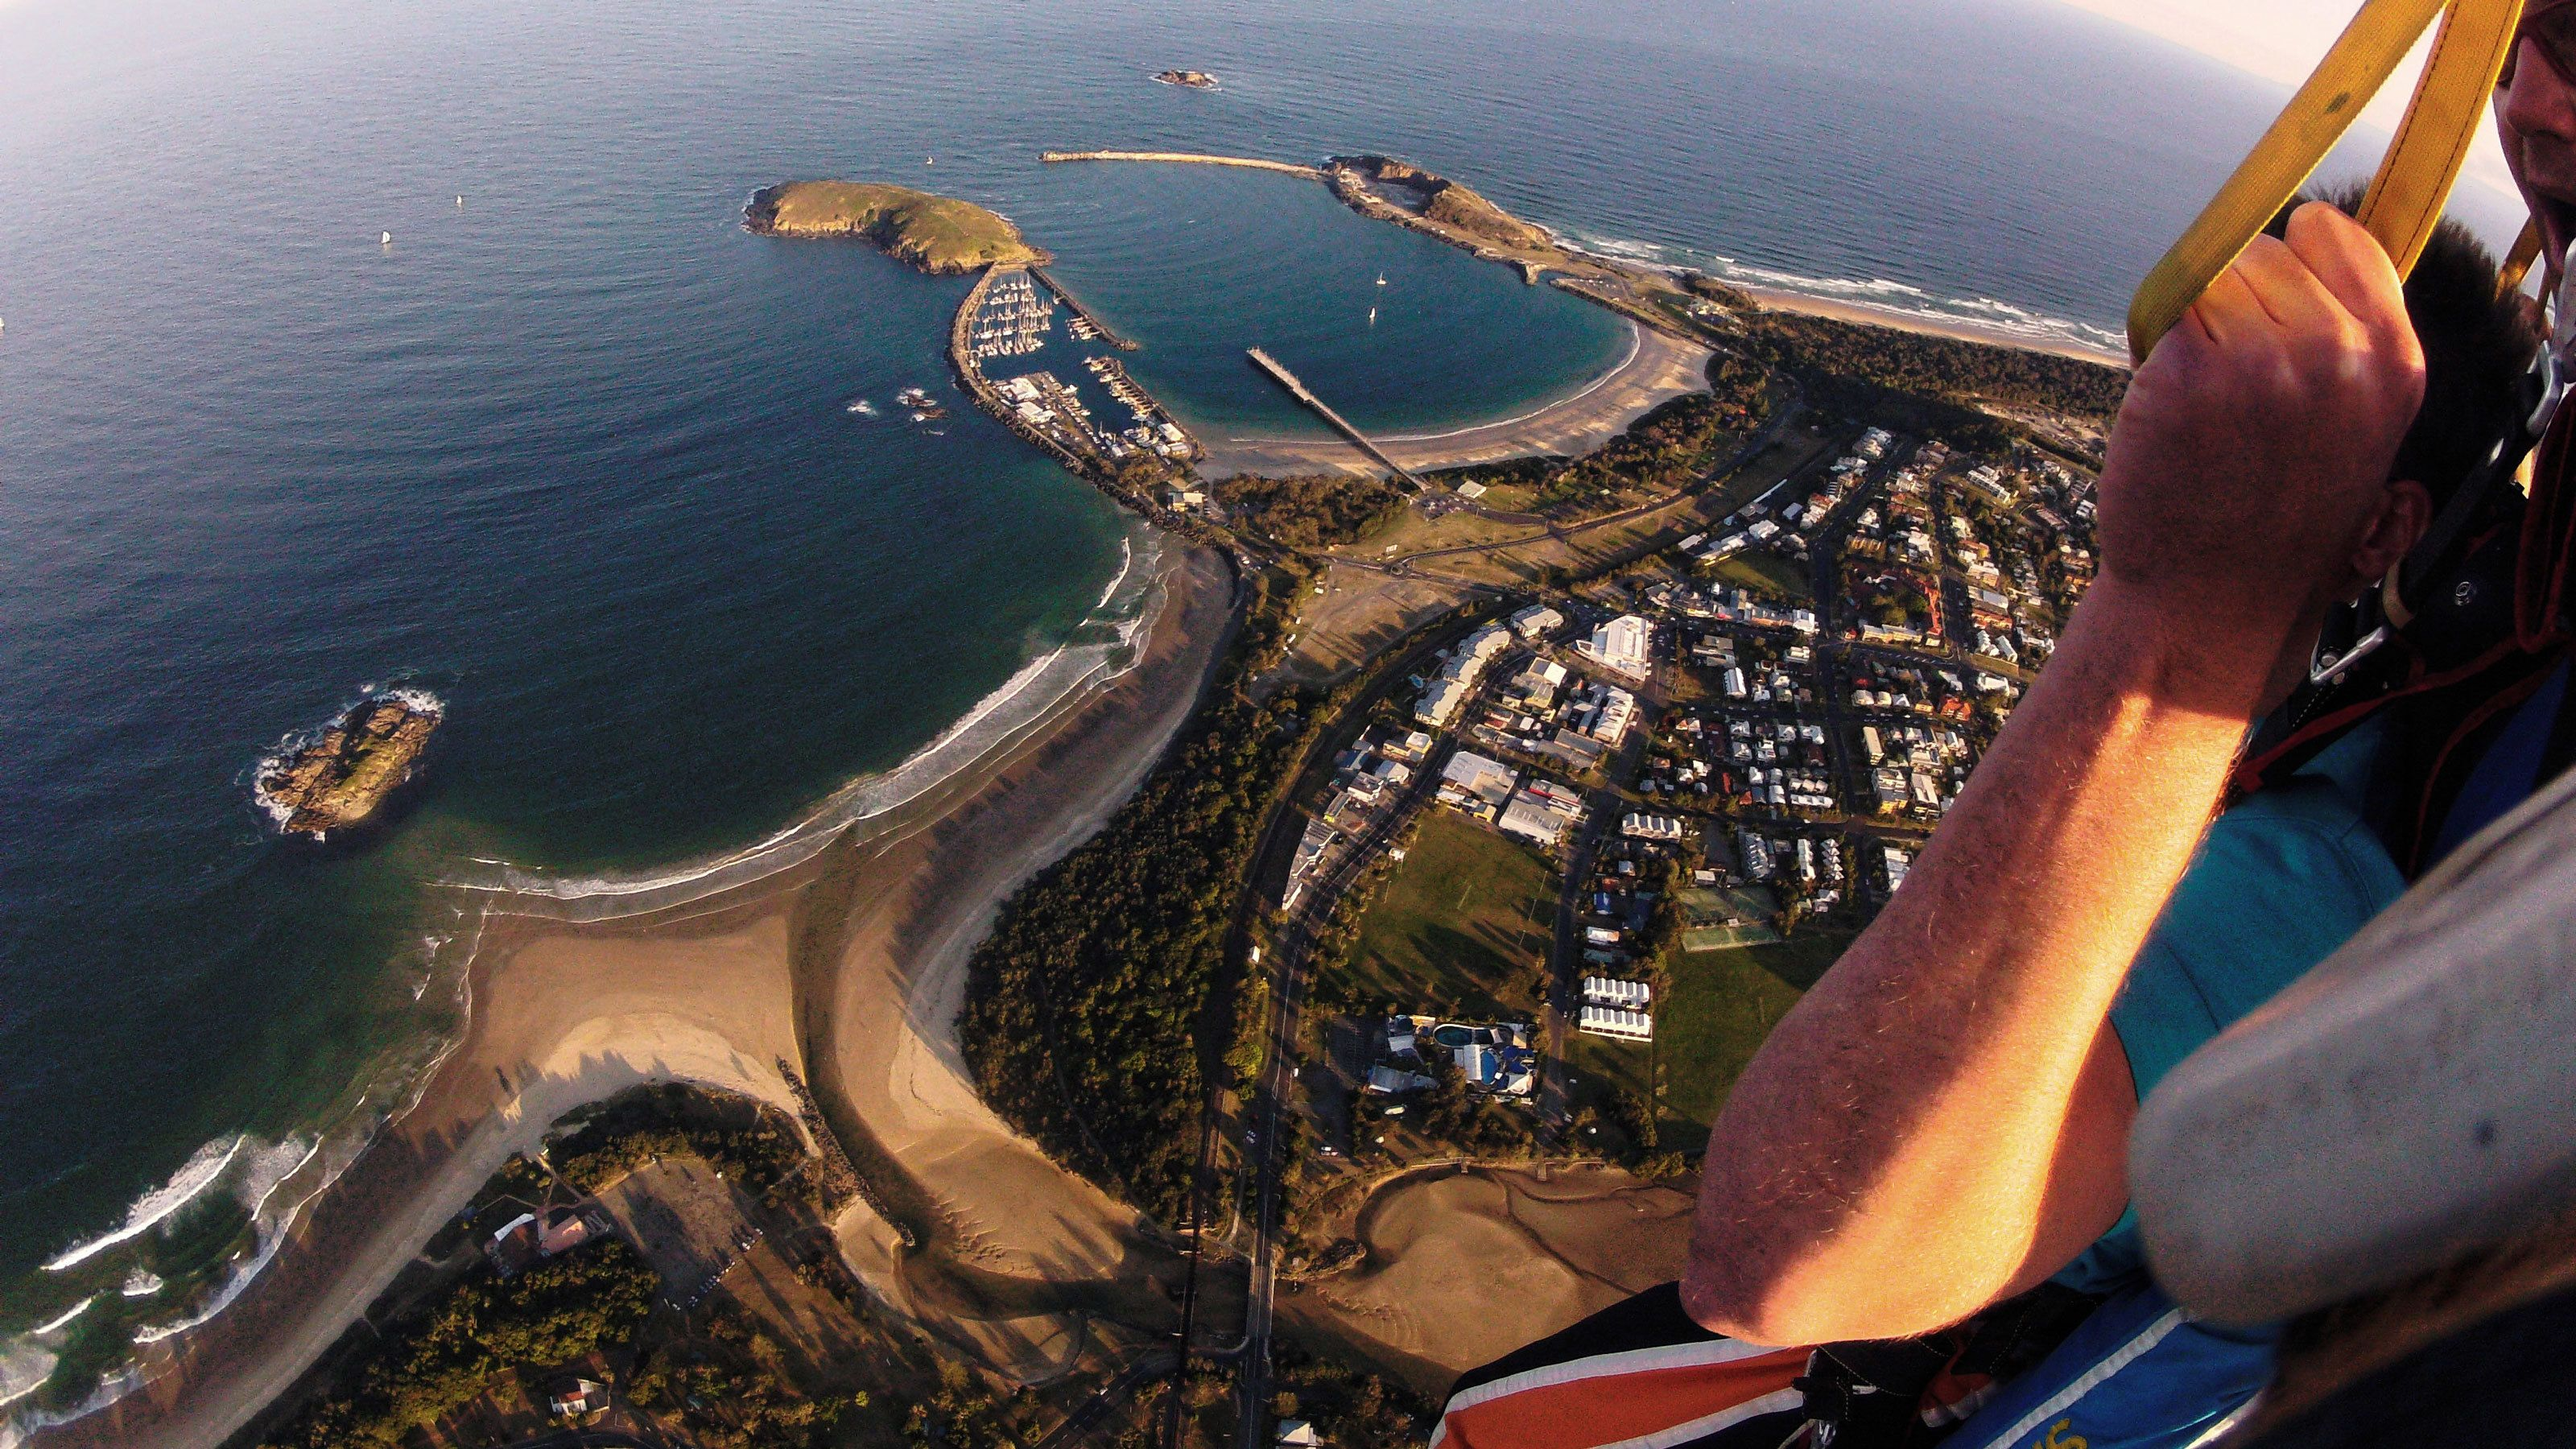 Tandem skydivers fly over Coffs Harbour after deploying parachute in Australia